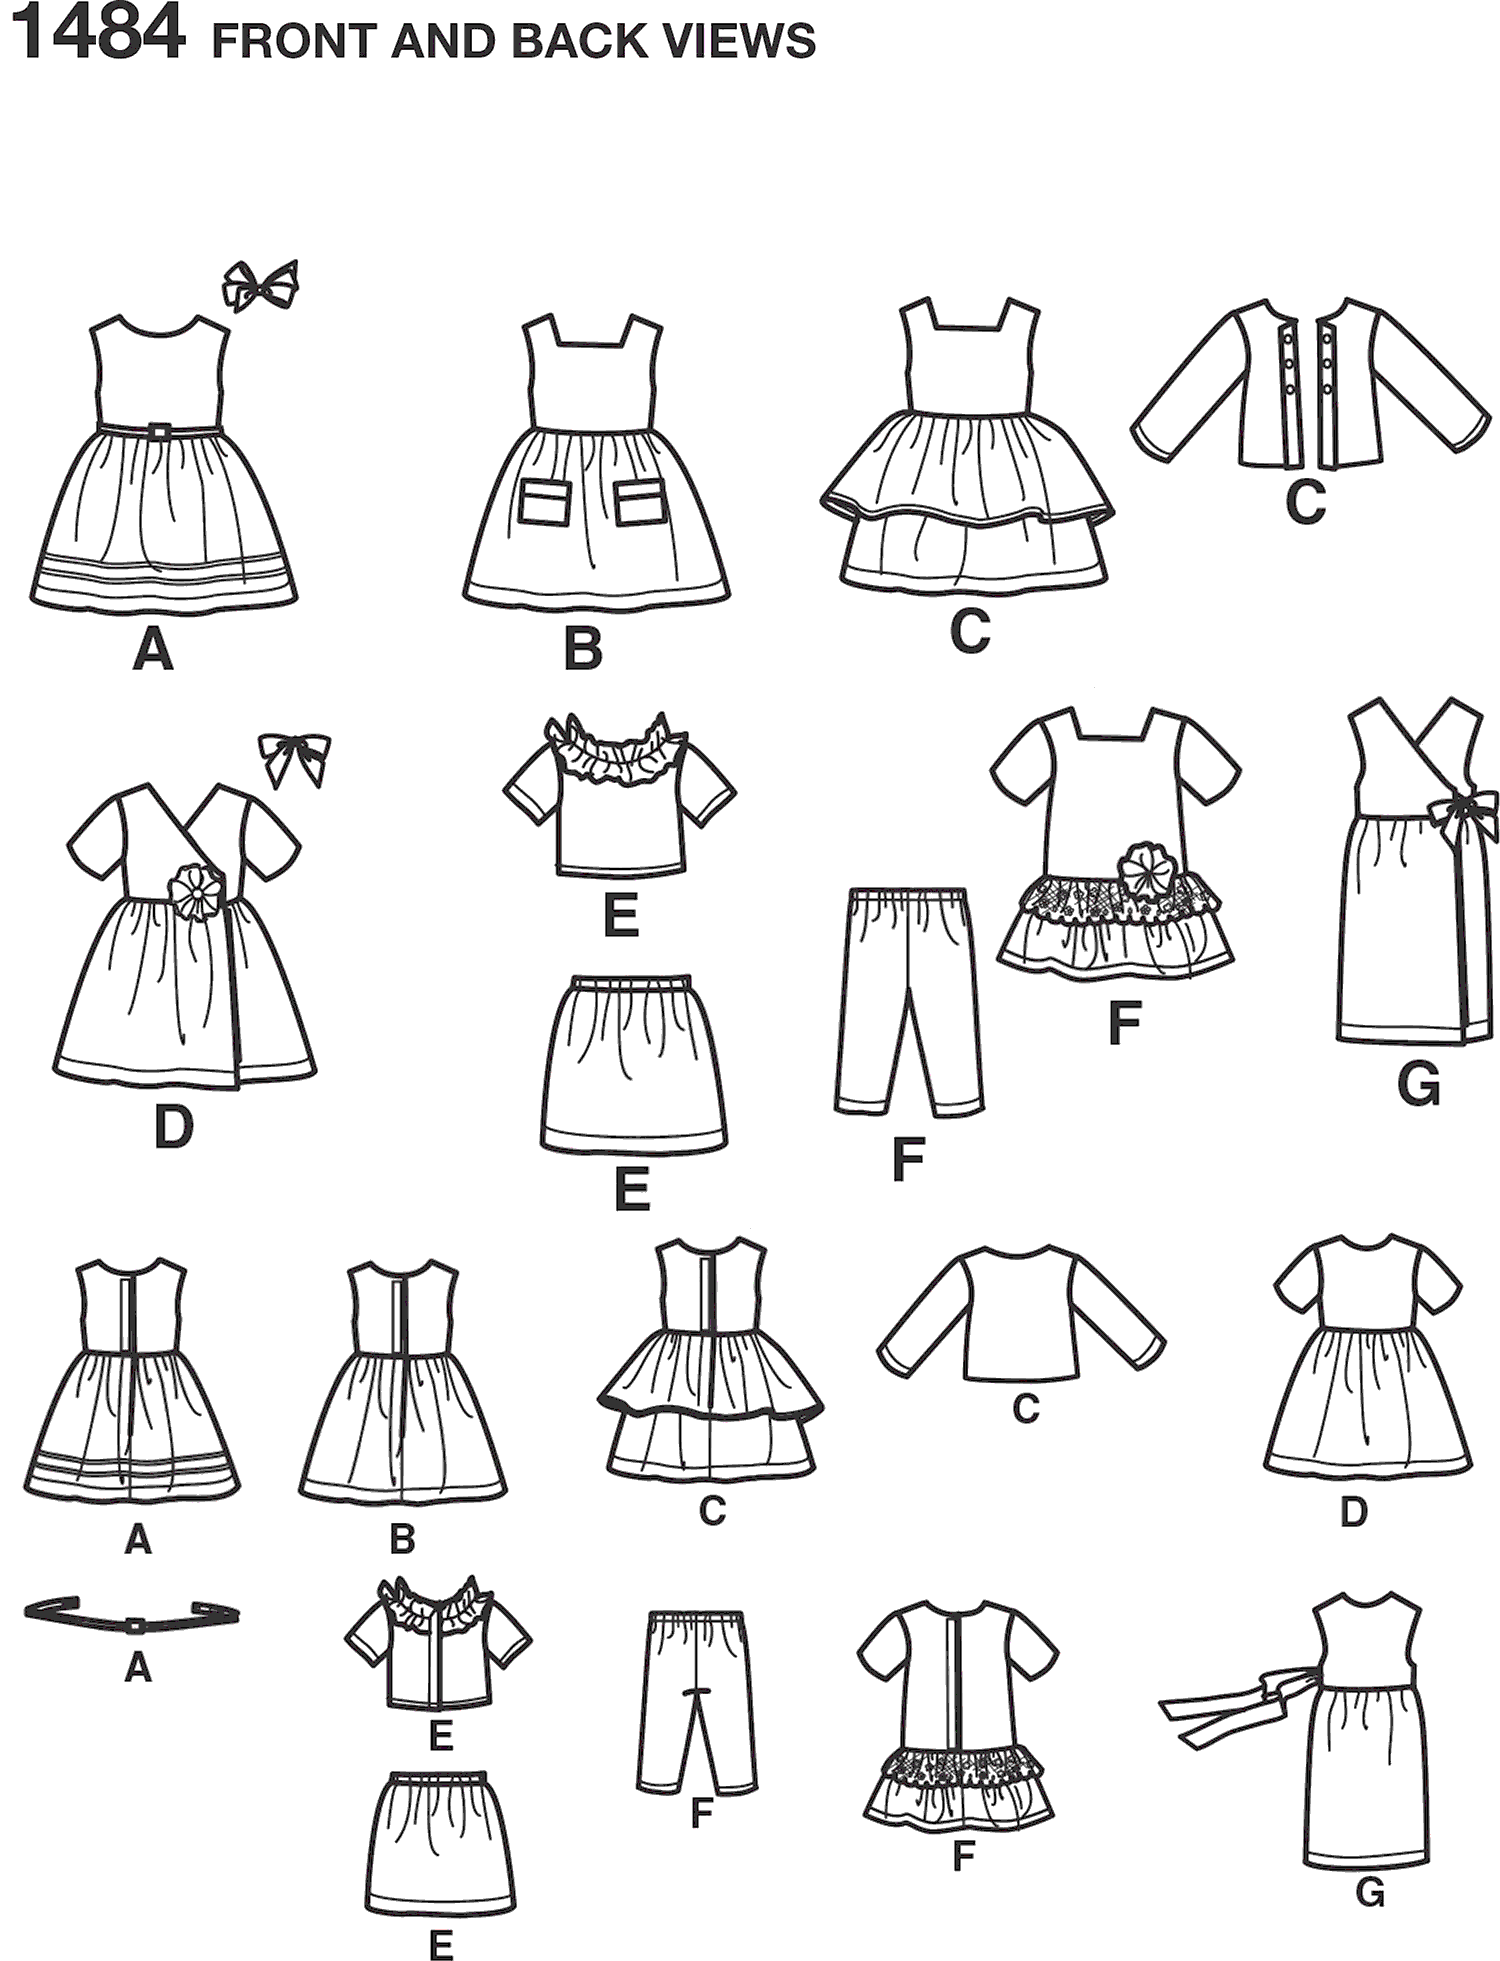 Simplicity Pattern 1484 18 Doll Clothes Line Art From Patternsandplains.com